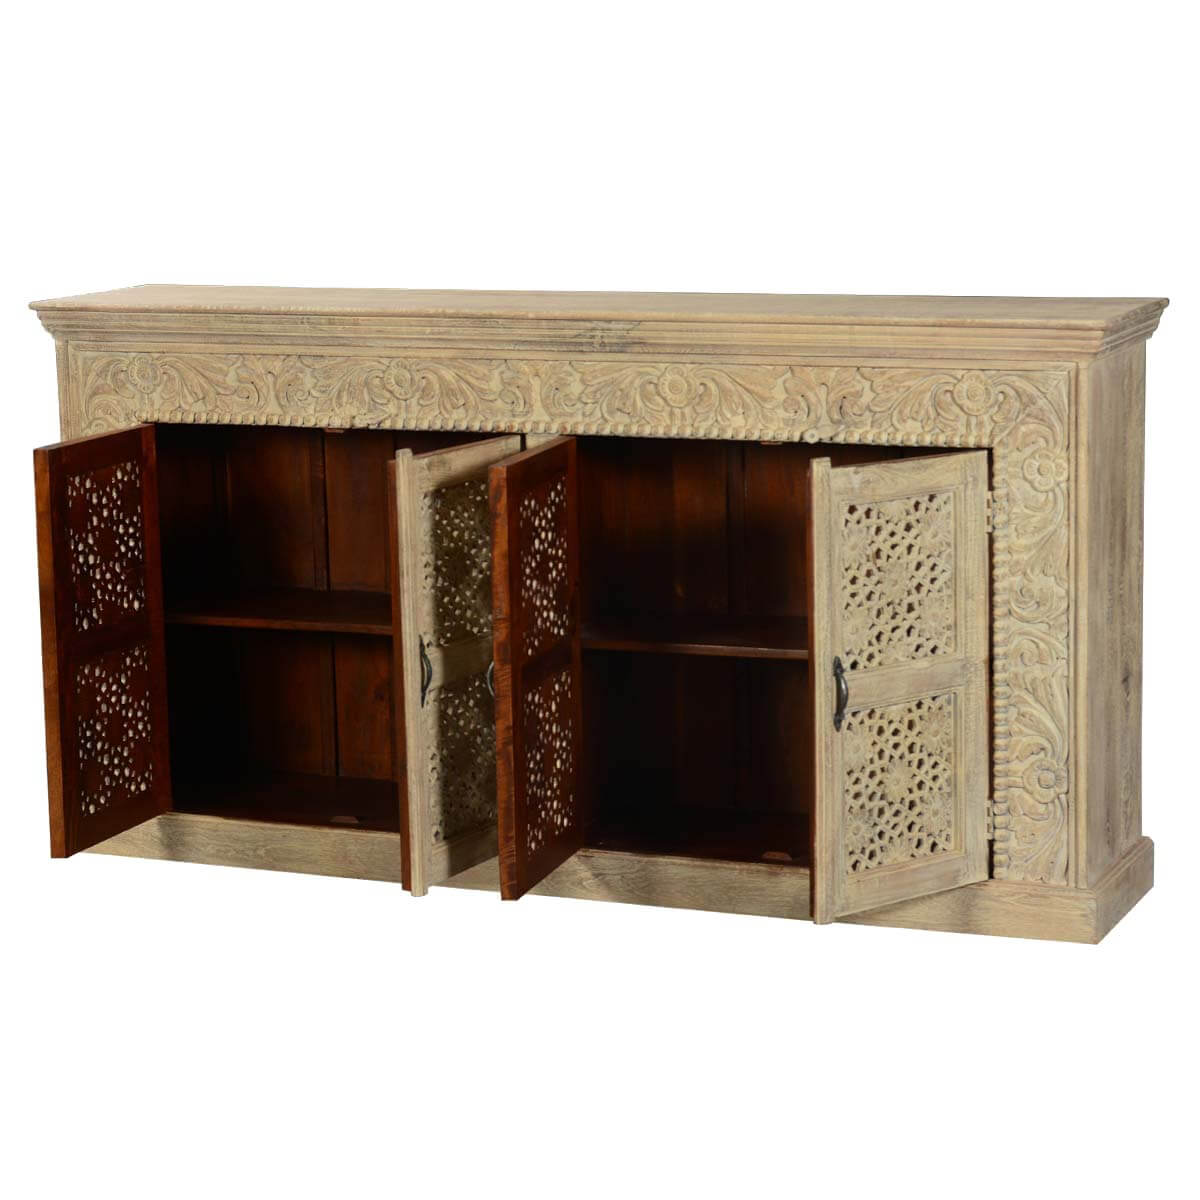 Marvelous photograph of  Collection Snowfall Antique White Mango Wood Sideboard Buffet Cabinet with #B27F19 color and 1200x1200 pixels